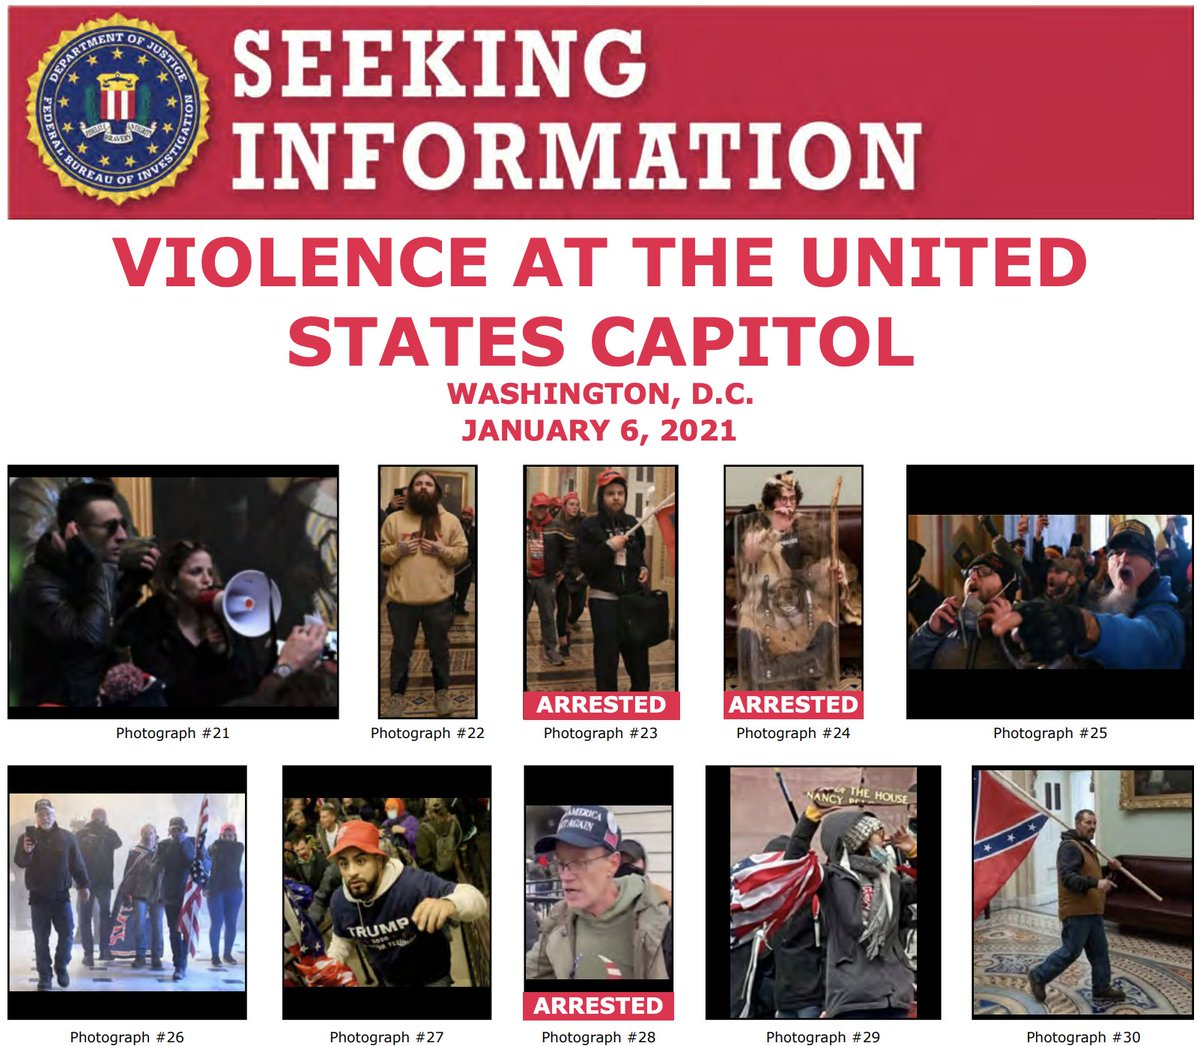 Thank you for your tips! The #FBI & our partners have arrested multiple ppl in connection with violence at the US Capitol last week. We still need the public to help us identify individuals. If you know someone on one of these posters, submit a tip at fbi.gov/USCapitol.